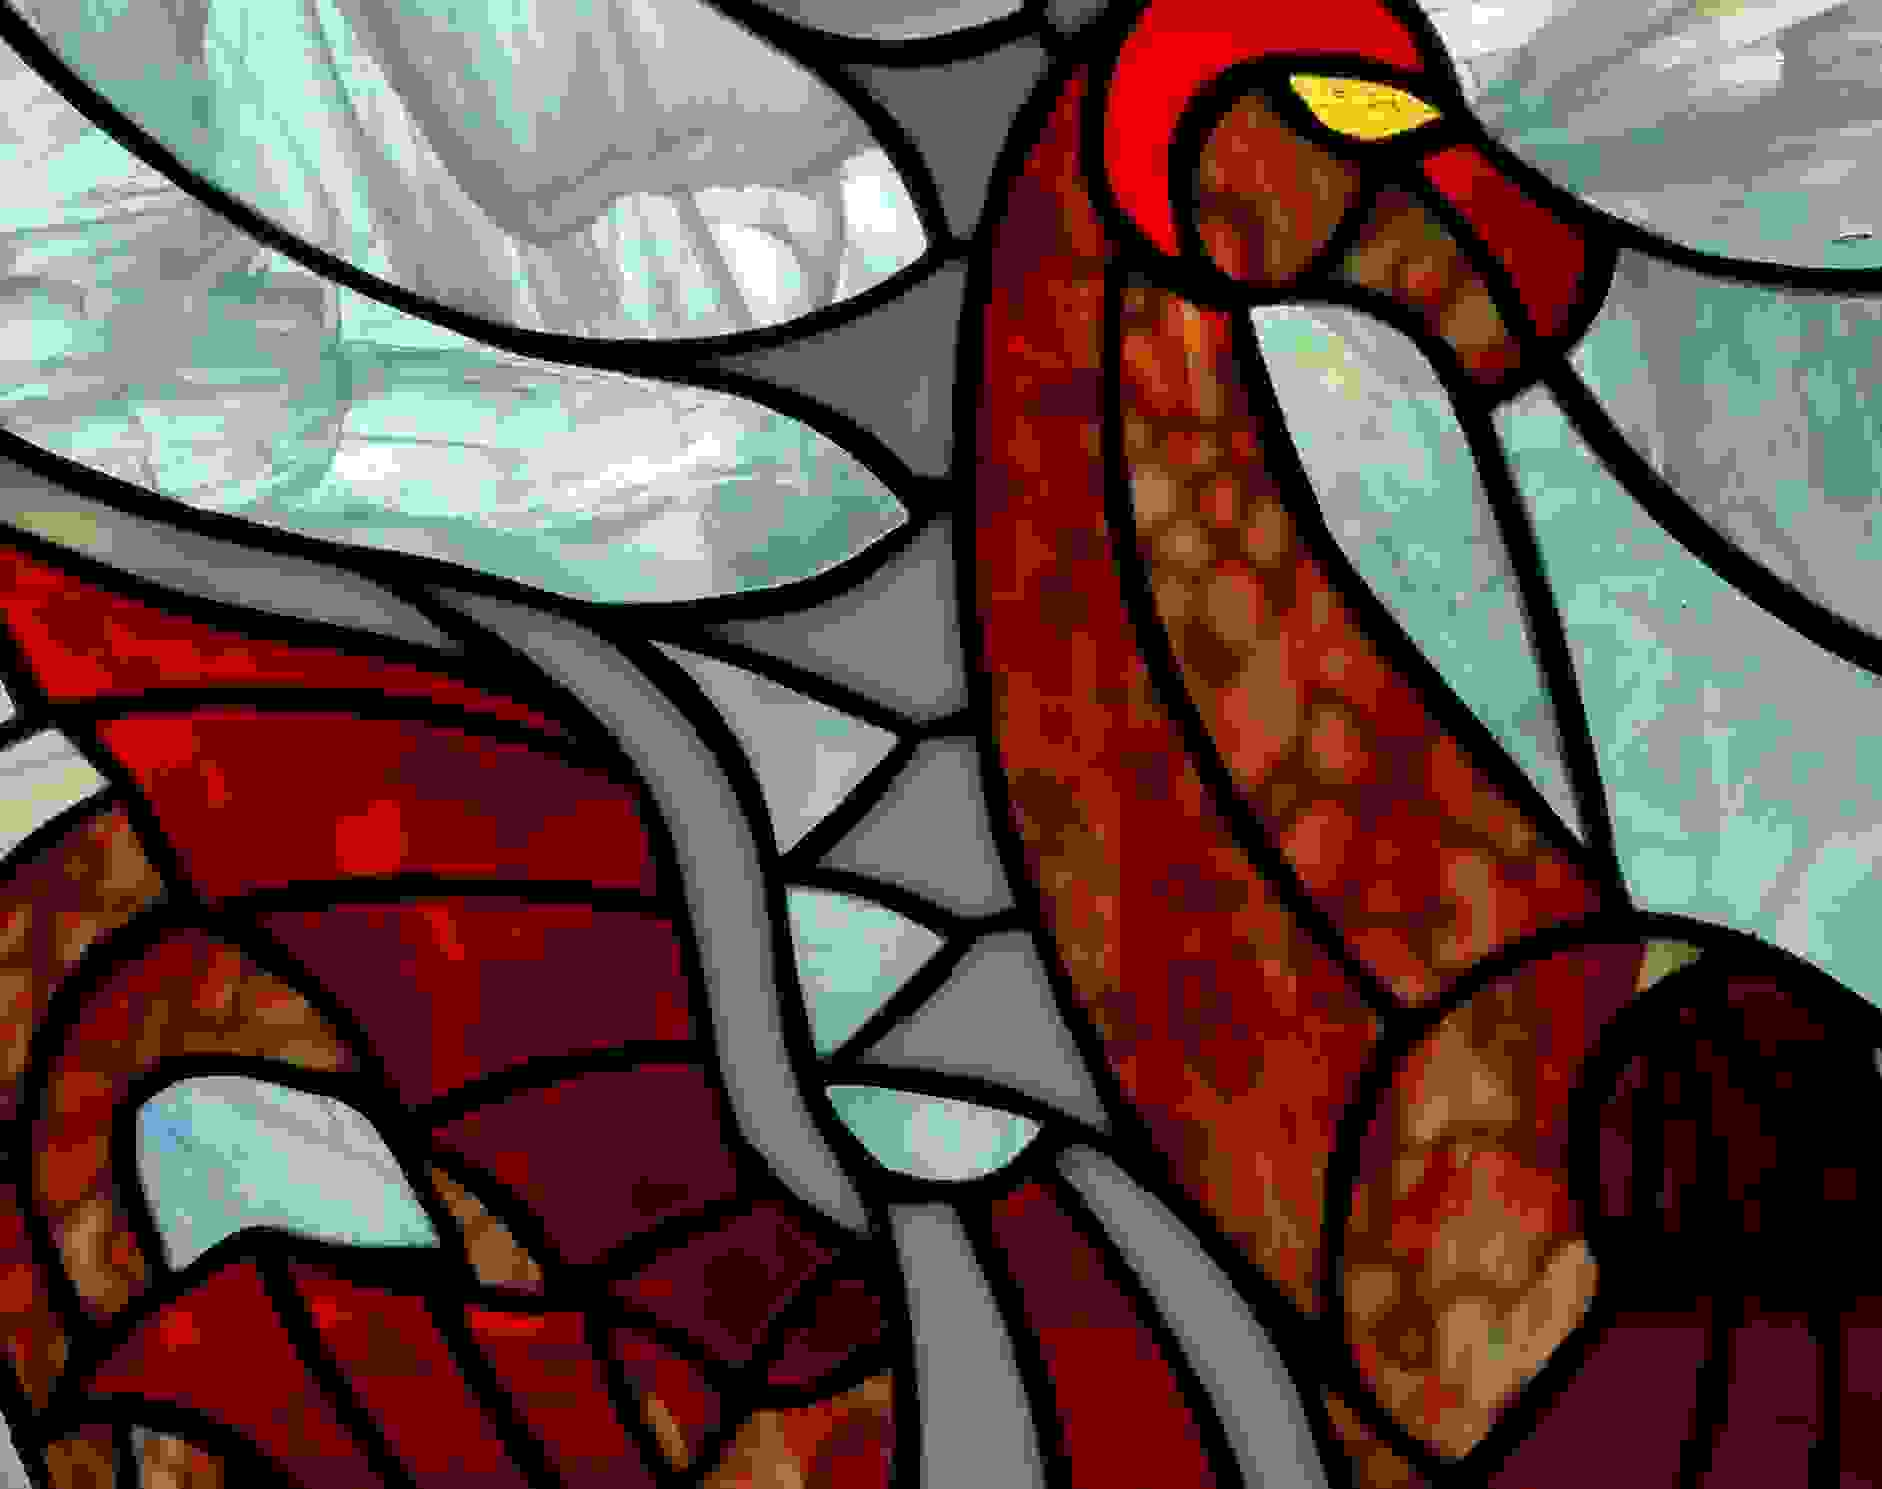 A stained glass piece of a red dragon